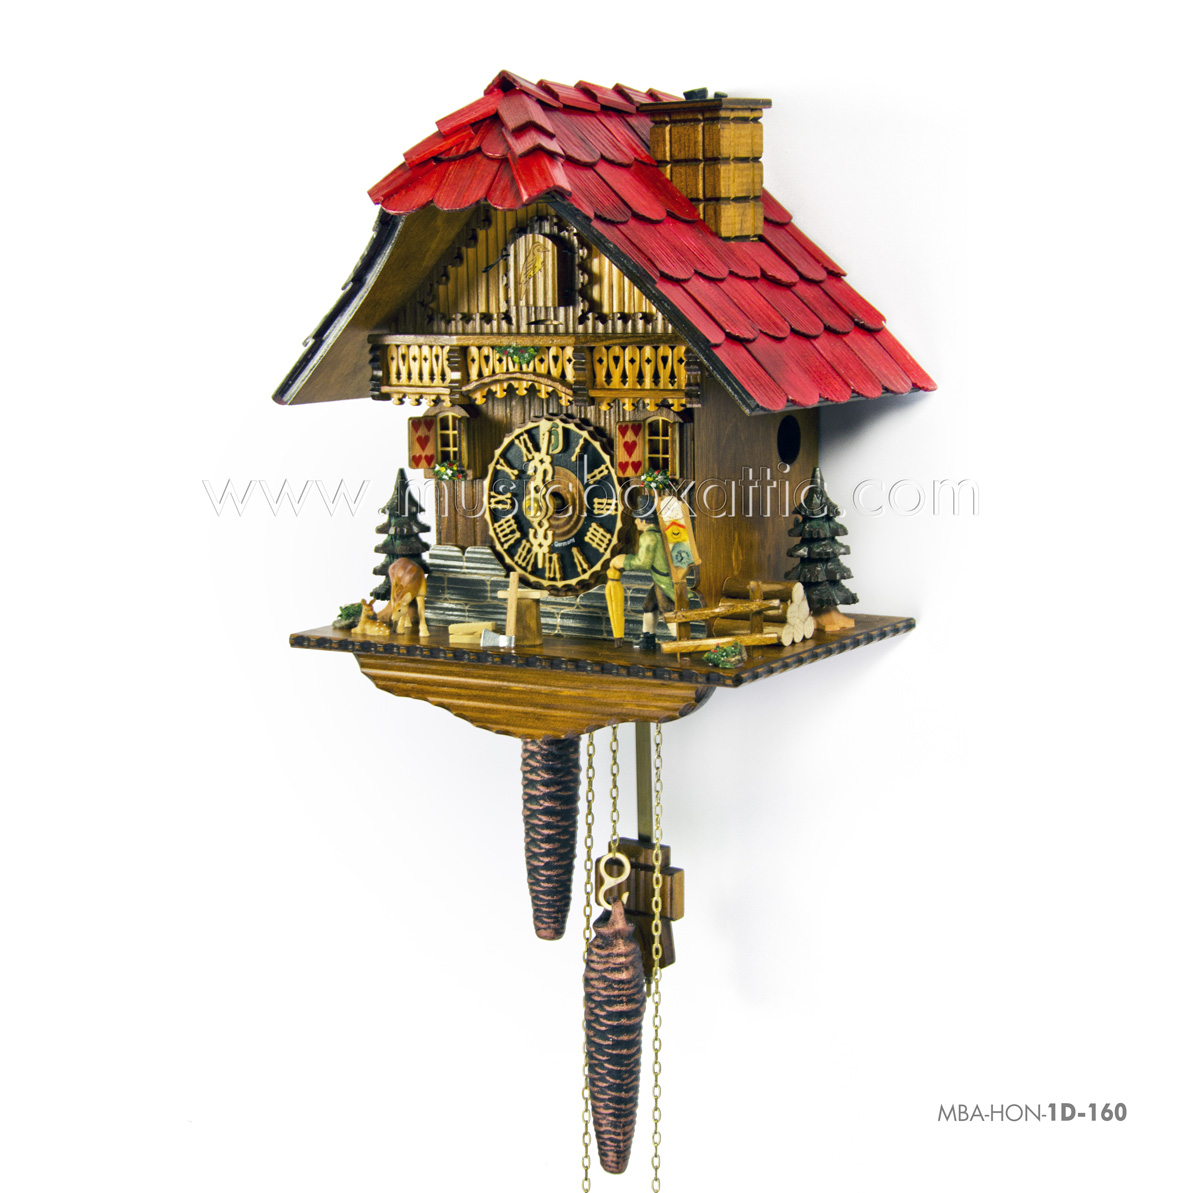 1 Day Black Forest Chalet Cuckoo Clock with Clock Peddler By Hones